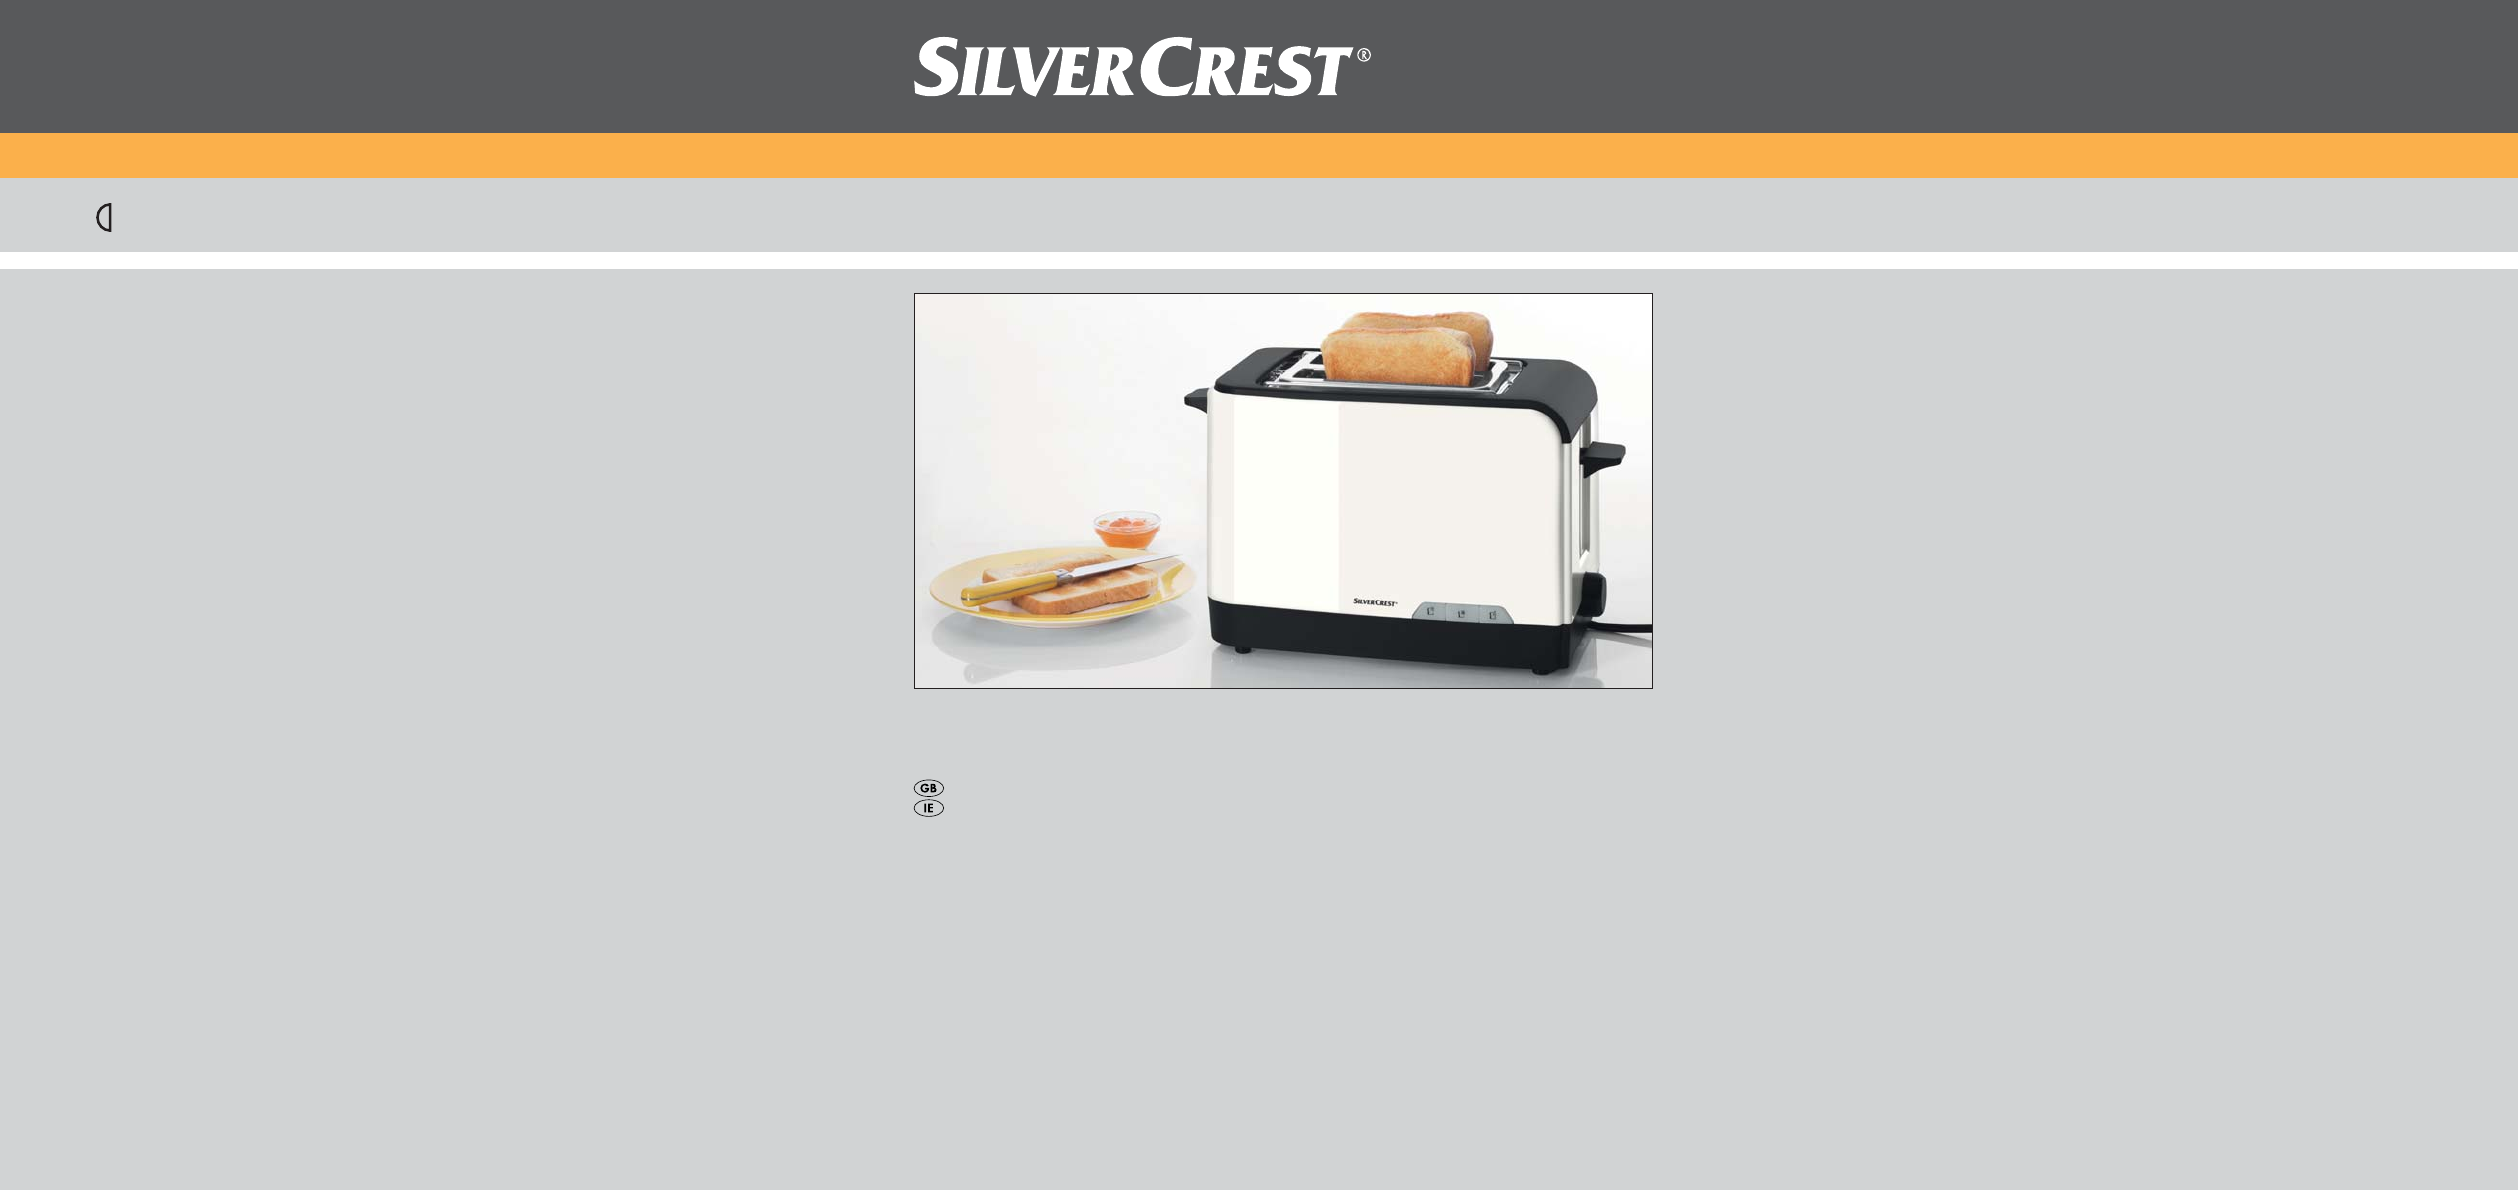 silvercrest toaster 800 a1 user guide manualsonline com rh kitchen manualsonline com Meridian Phone Manual silvercrest simply talk 100 telephone manual